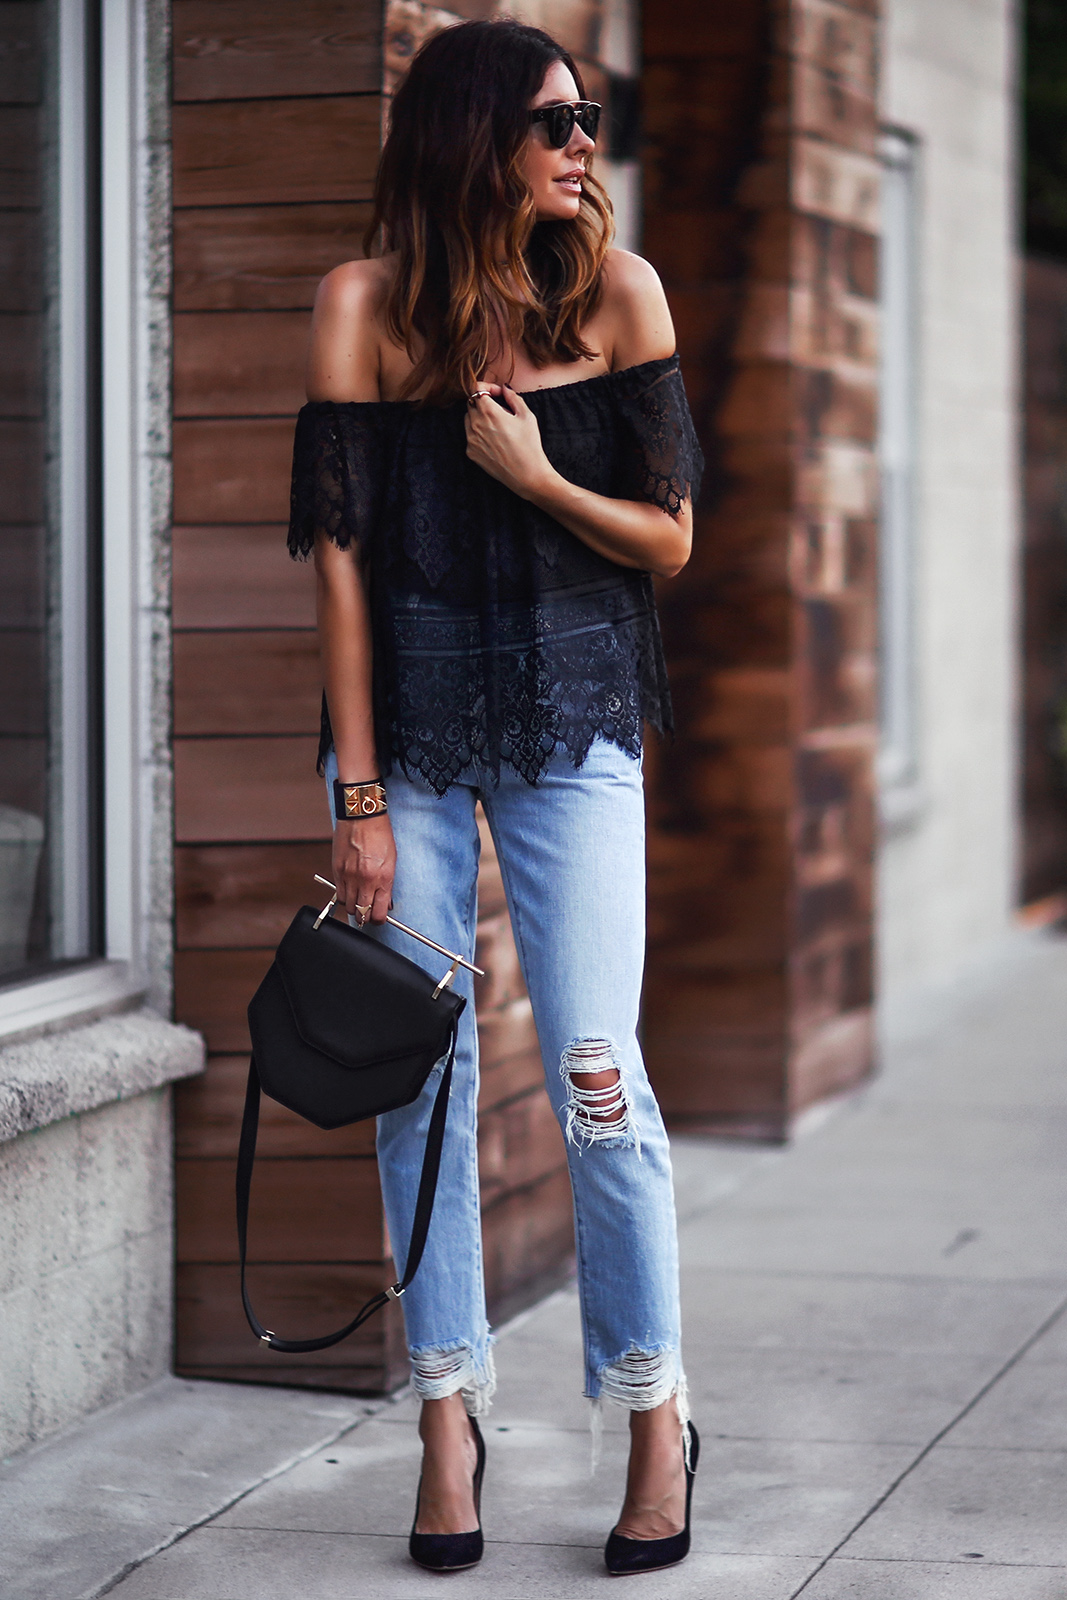 Ripped Jeans Outfits: The Ripped And Distressed Jeans Are